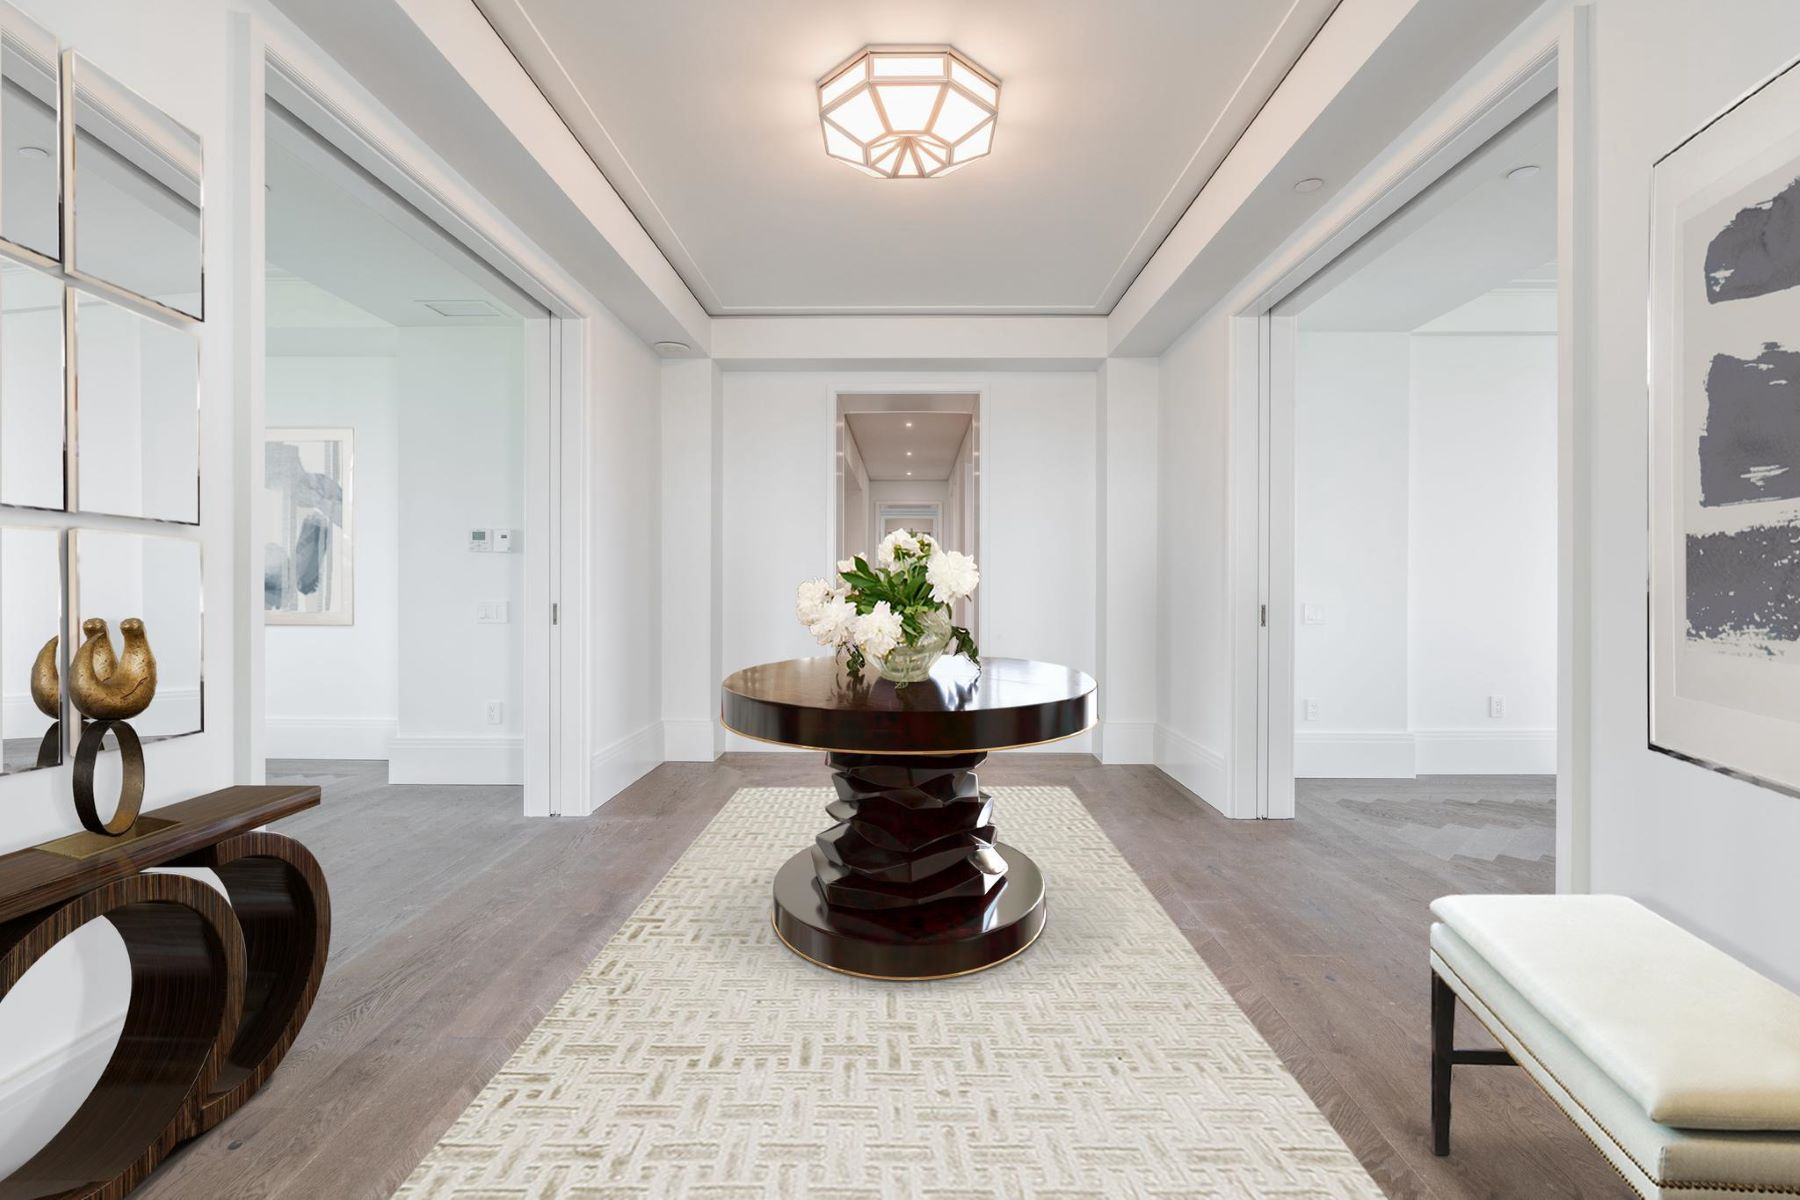 Condominiums for Sale at 2660 Connecticut Ave Nw #7b Washington, District Of Columbia 20008 United States